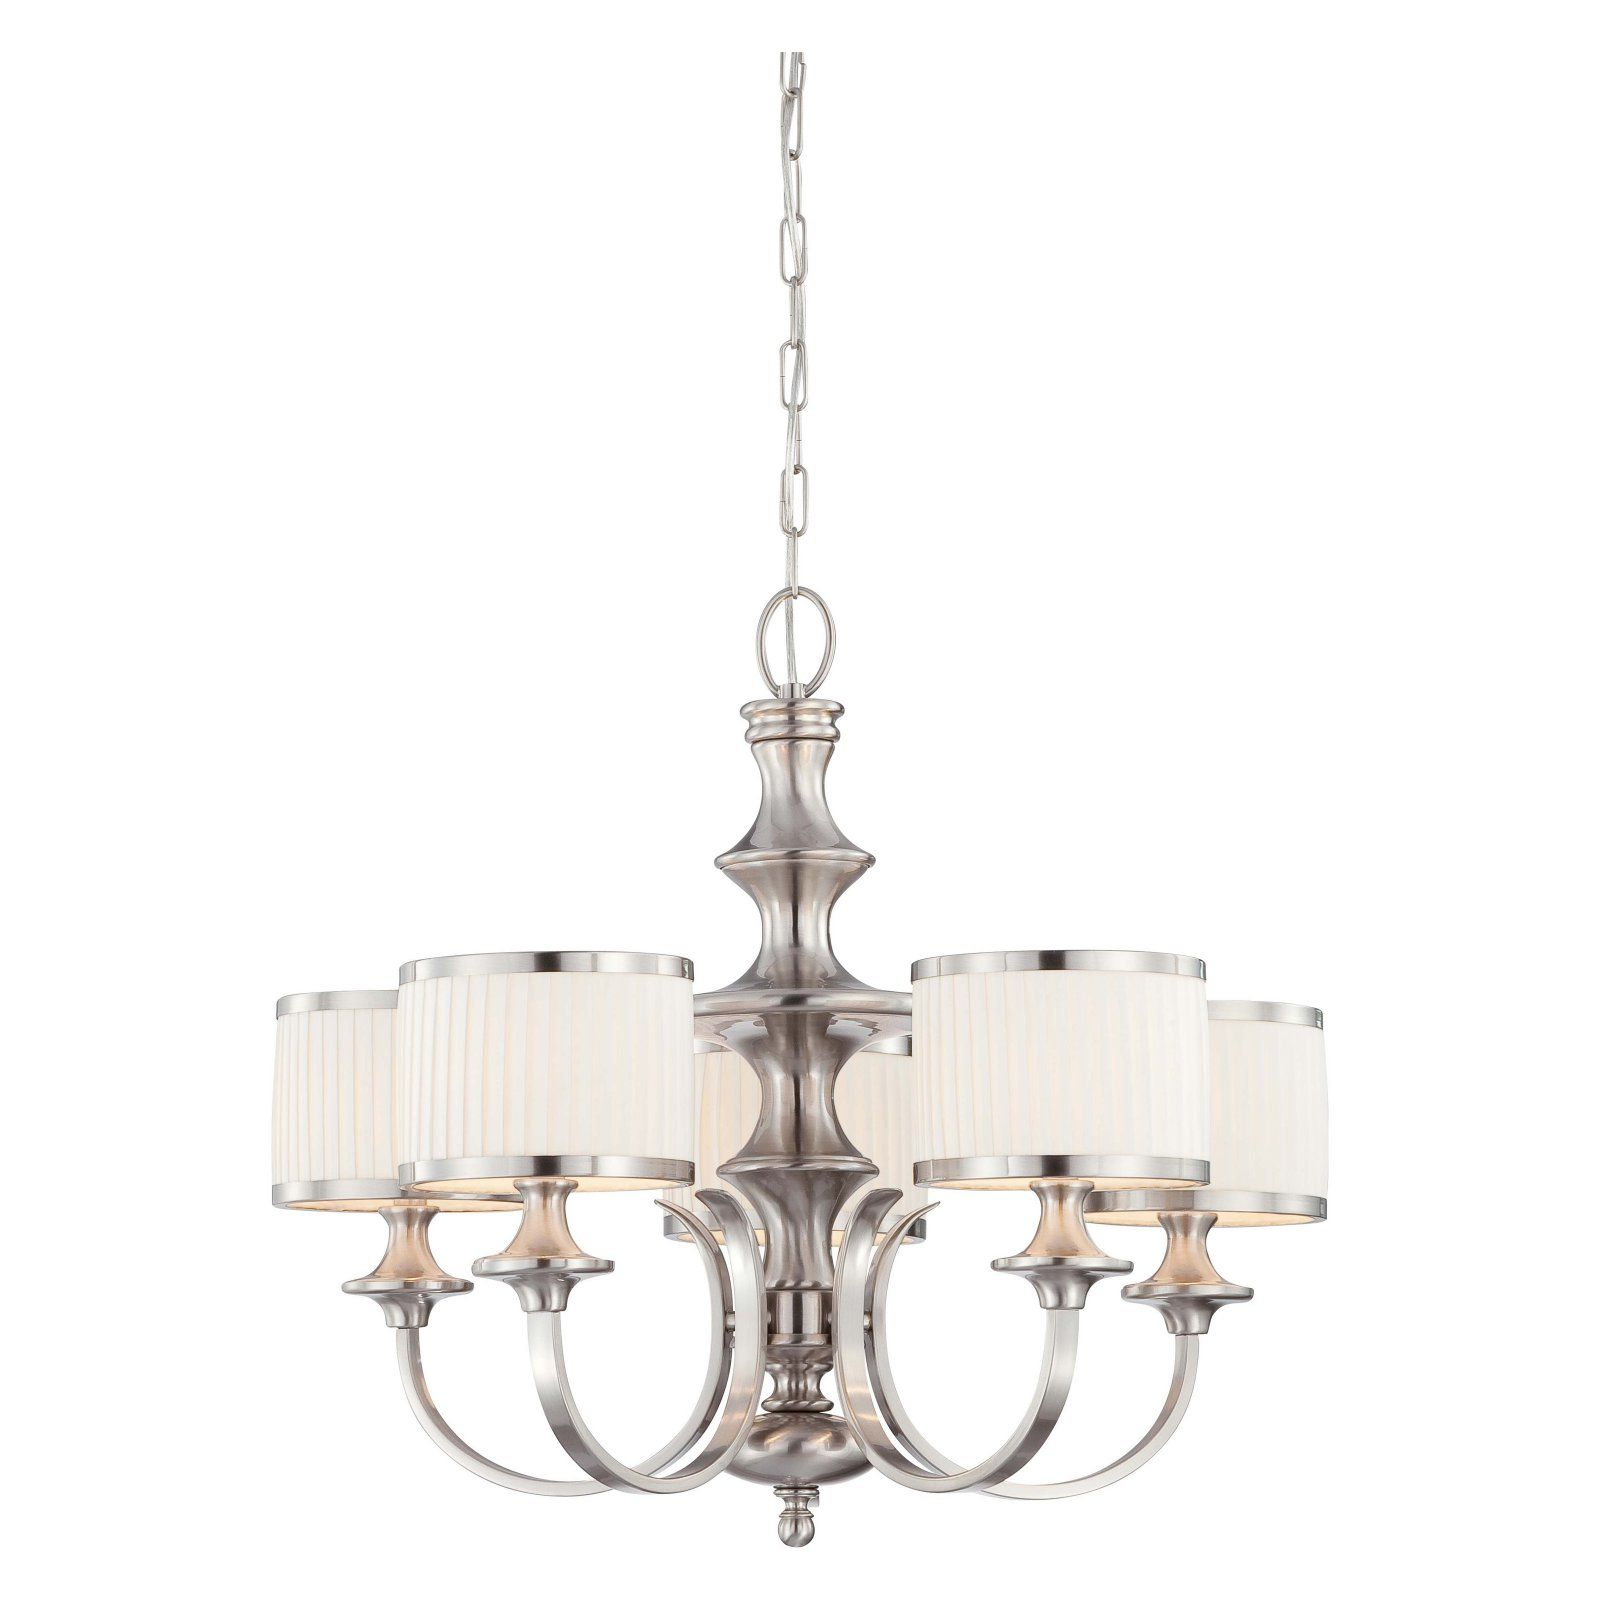 Nuvo Candice 60 4735 5 Light Chandelier 28w In Brushed Nickel